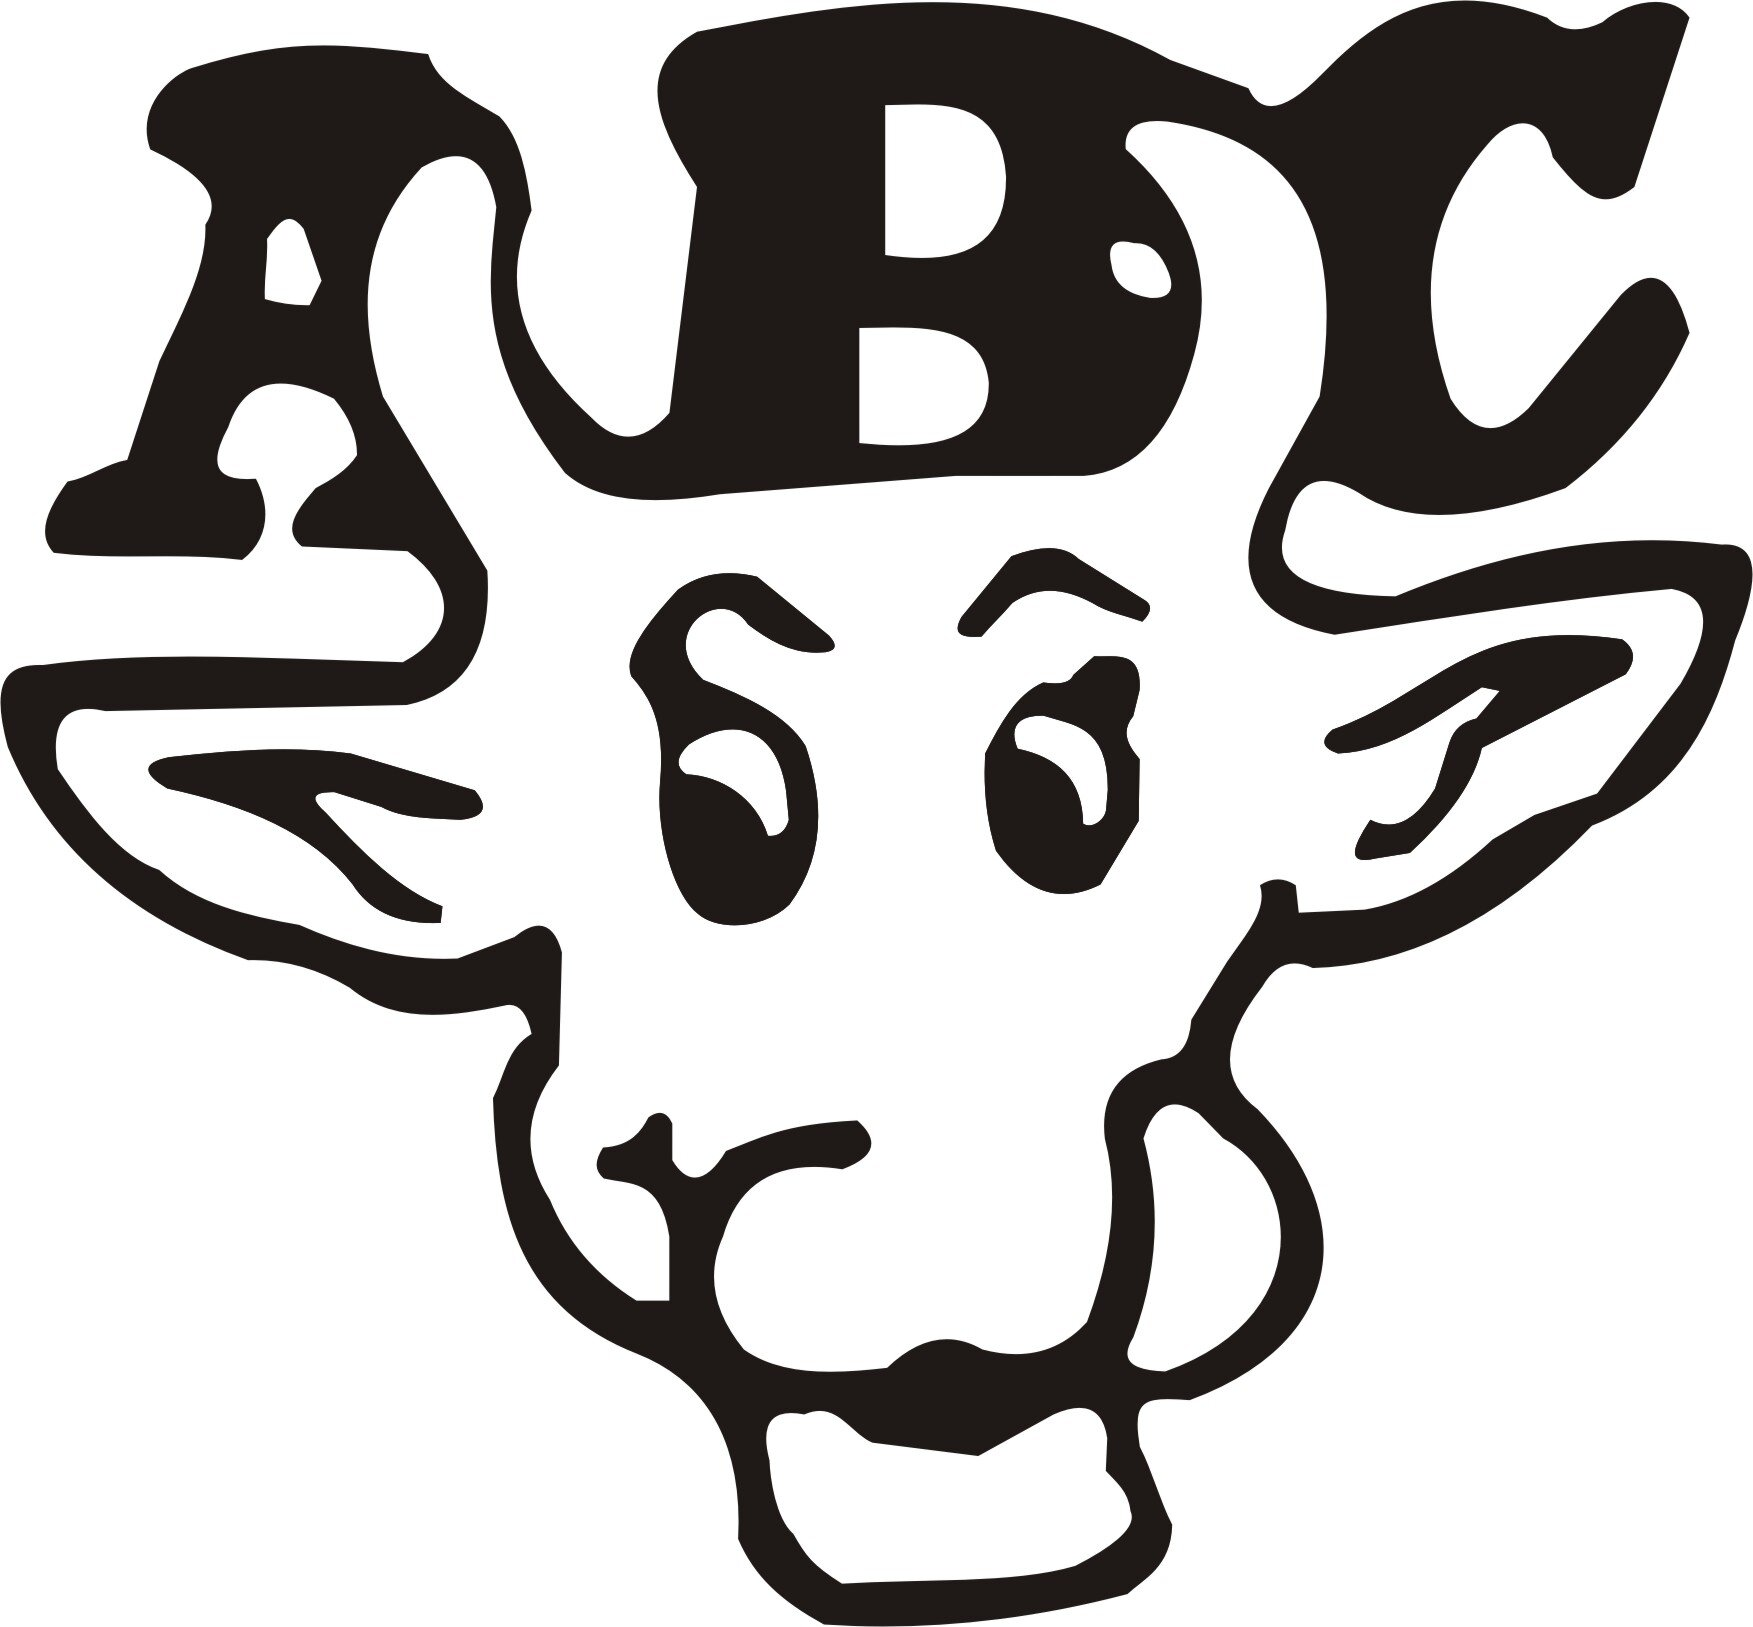 abc ltd Abc ltd is alastair barber communications limited alastair delivers consultancy projects either working alone or leading a bespoke team drawn from his associate network.